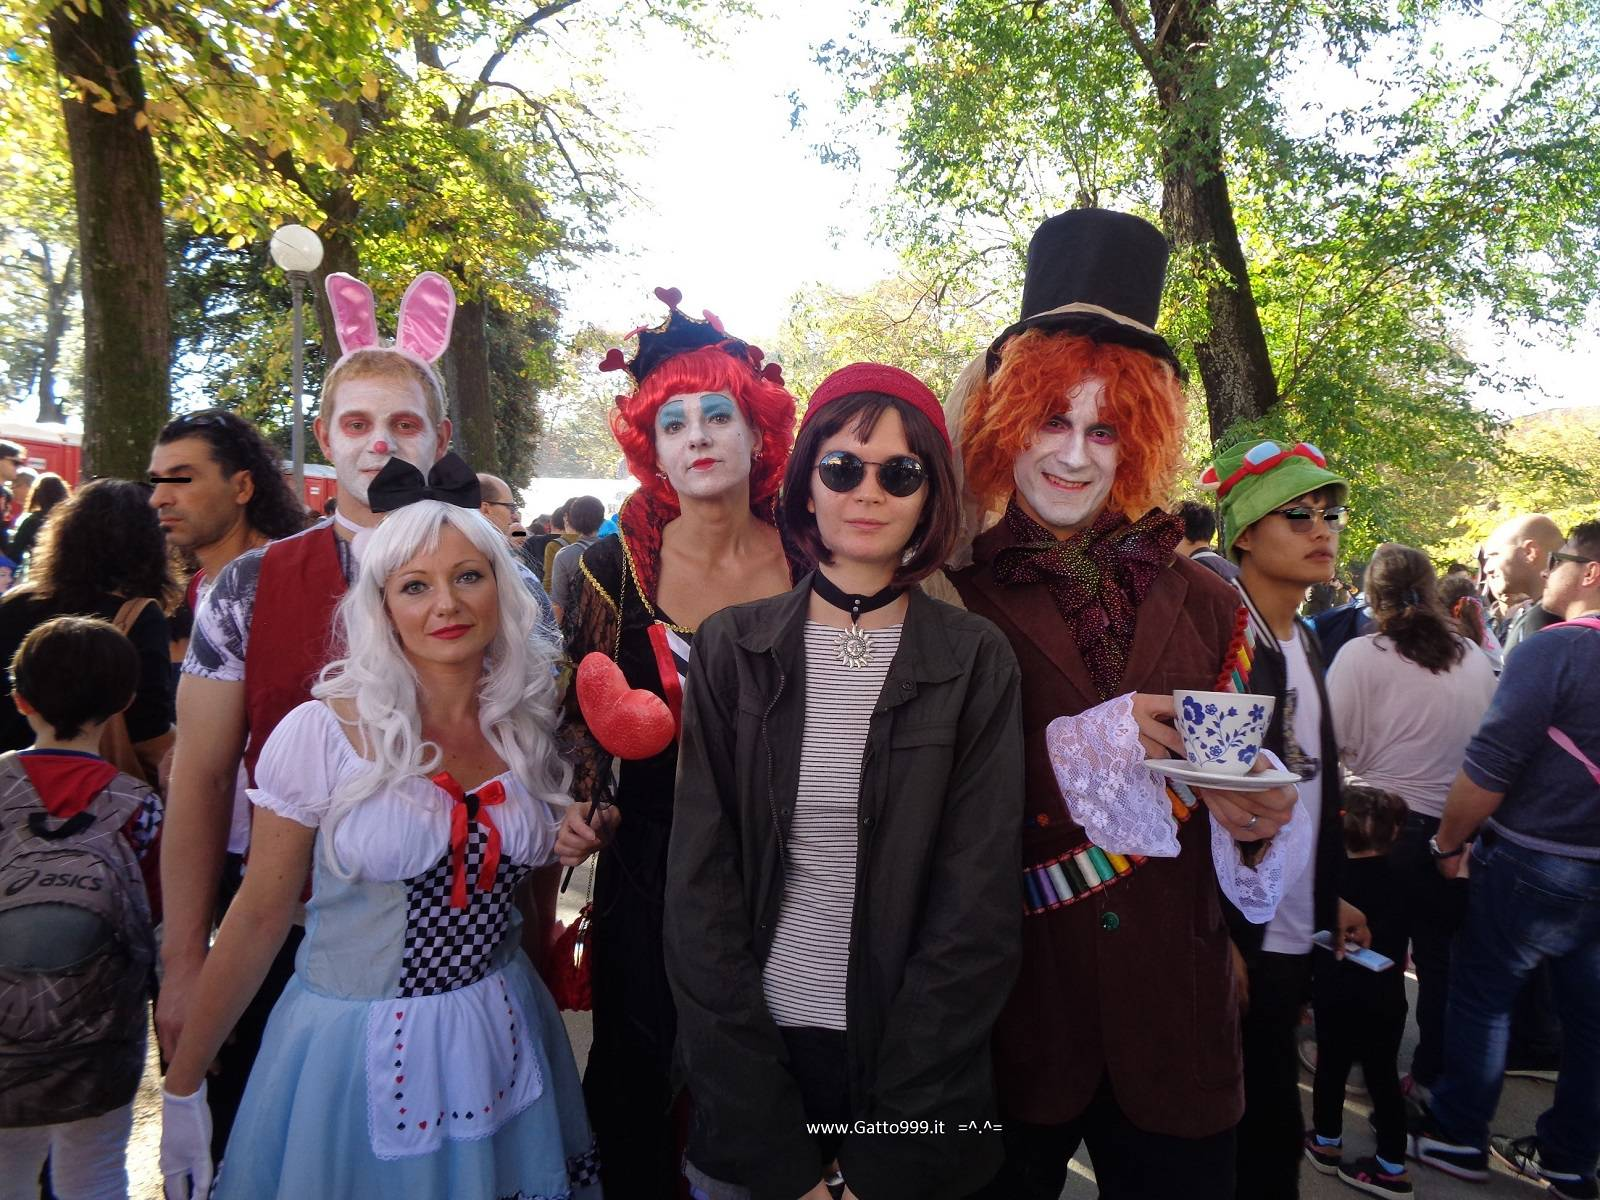 Cosplay Alice in Wonderland and mad hatter